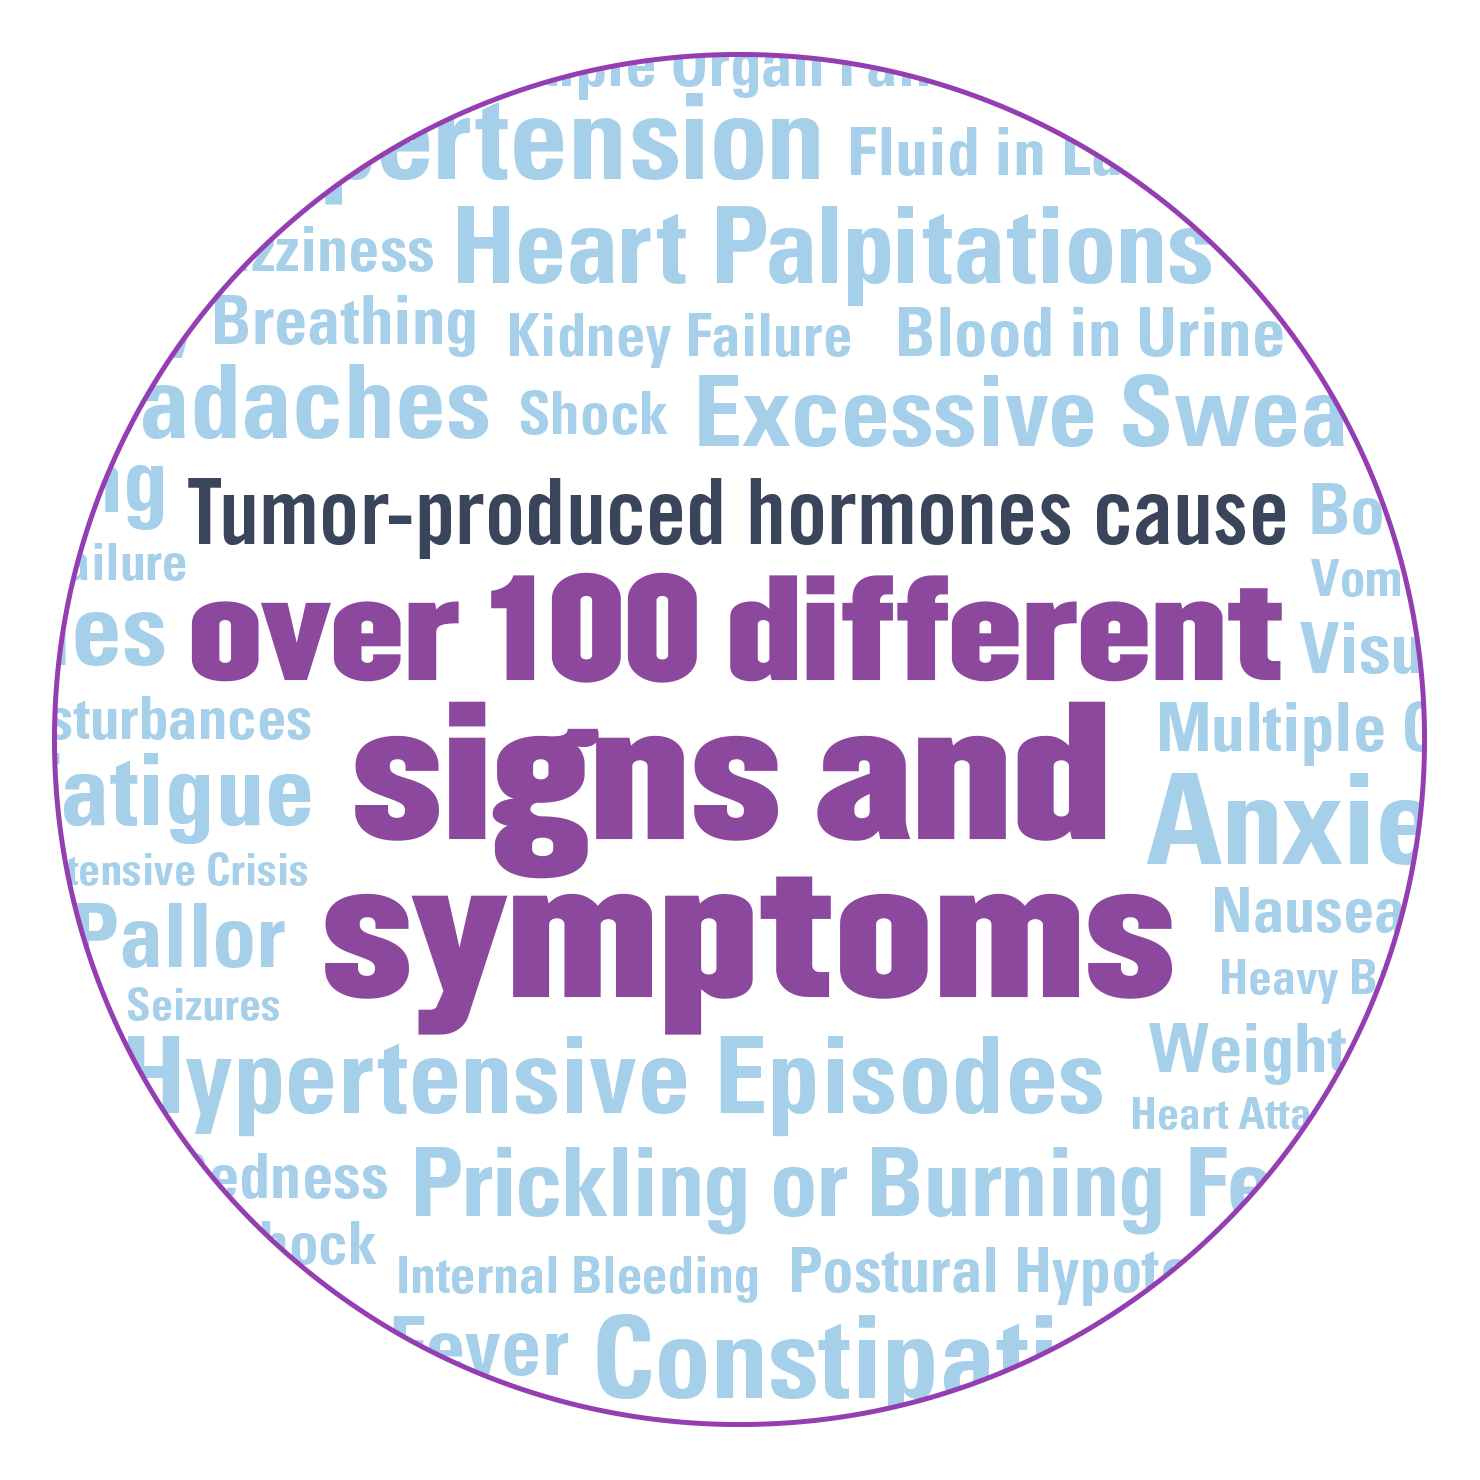 Tumor-produced hormones cause over 100 different signs and symptoms.